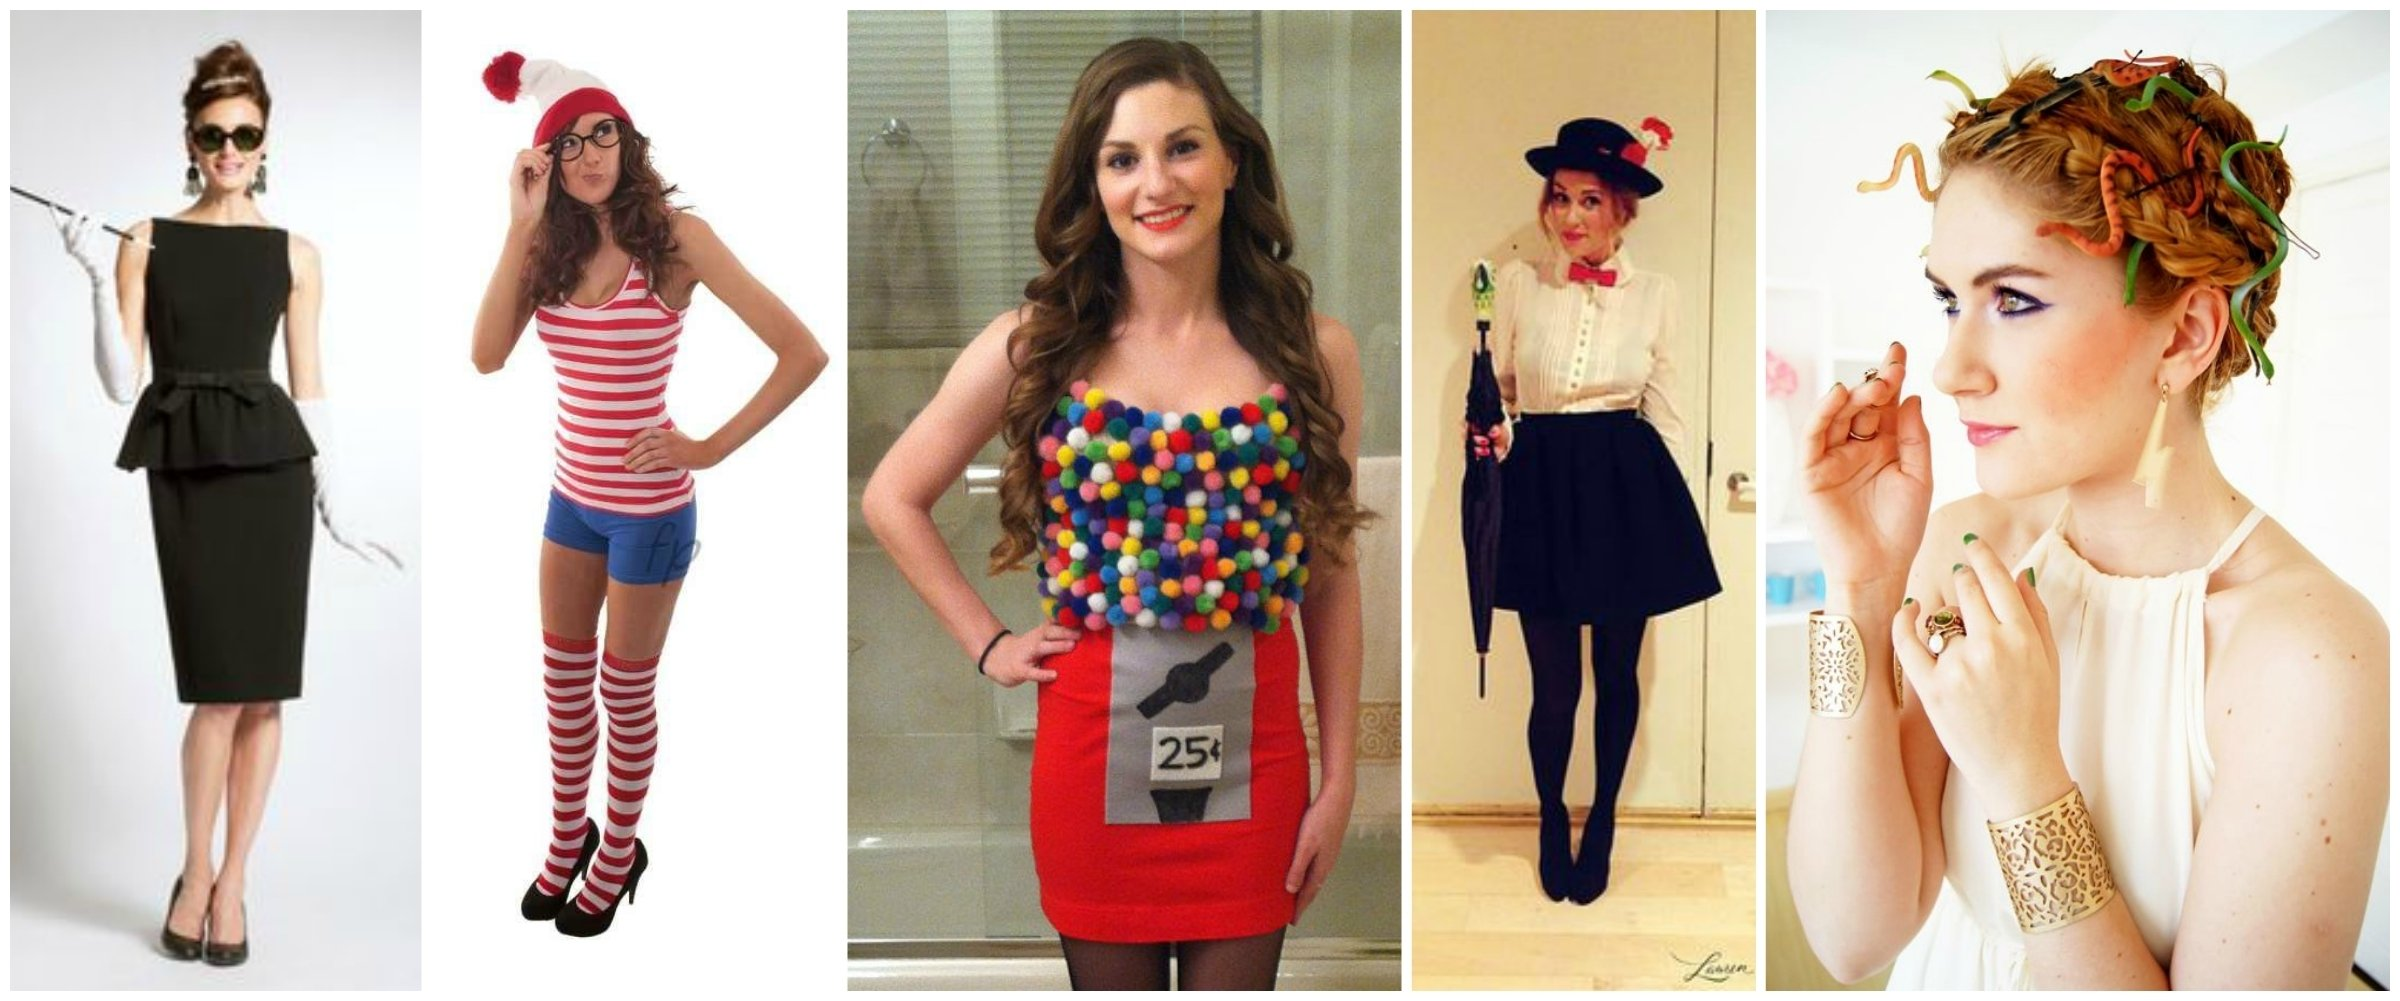 10 Ideal Easy Costume Ideas For Women 61 costume ideas for best 25 teen halloween costumes ideas on 4 2020